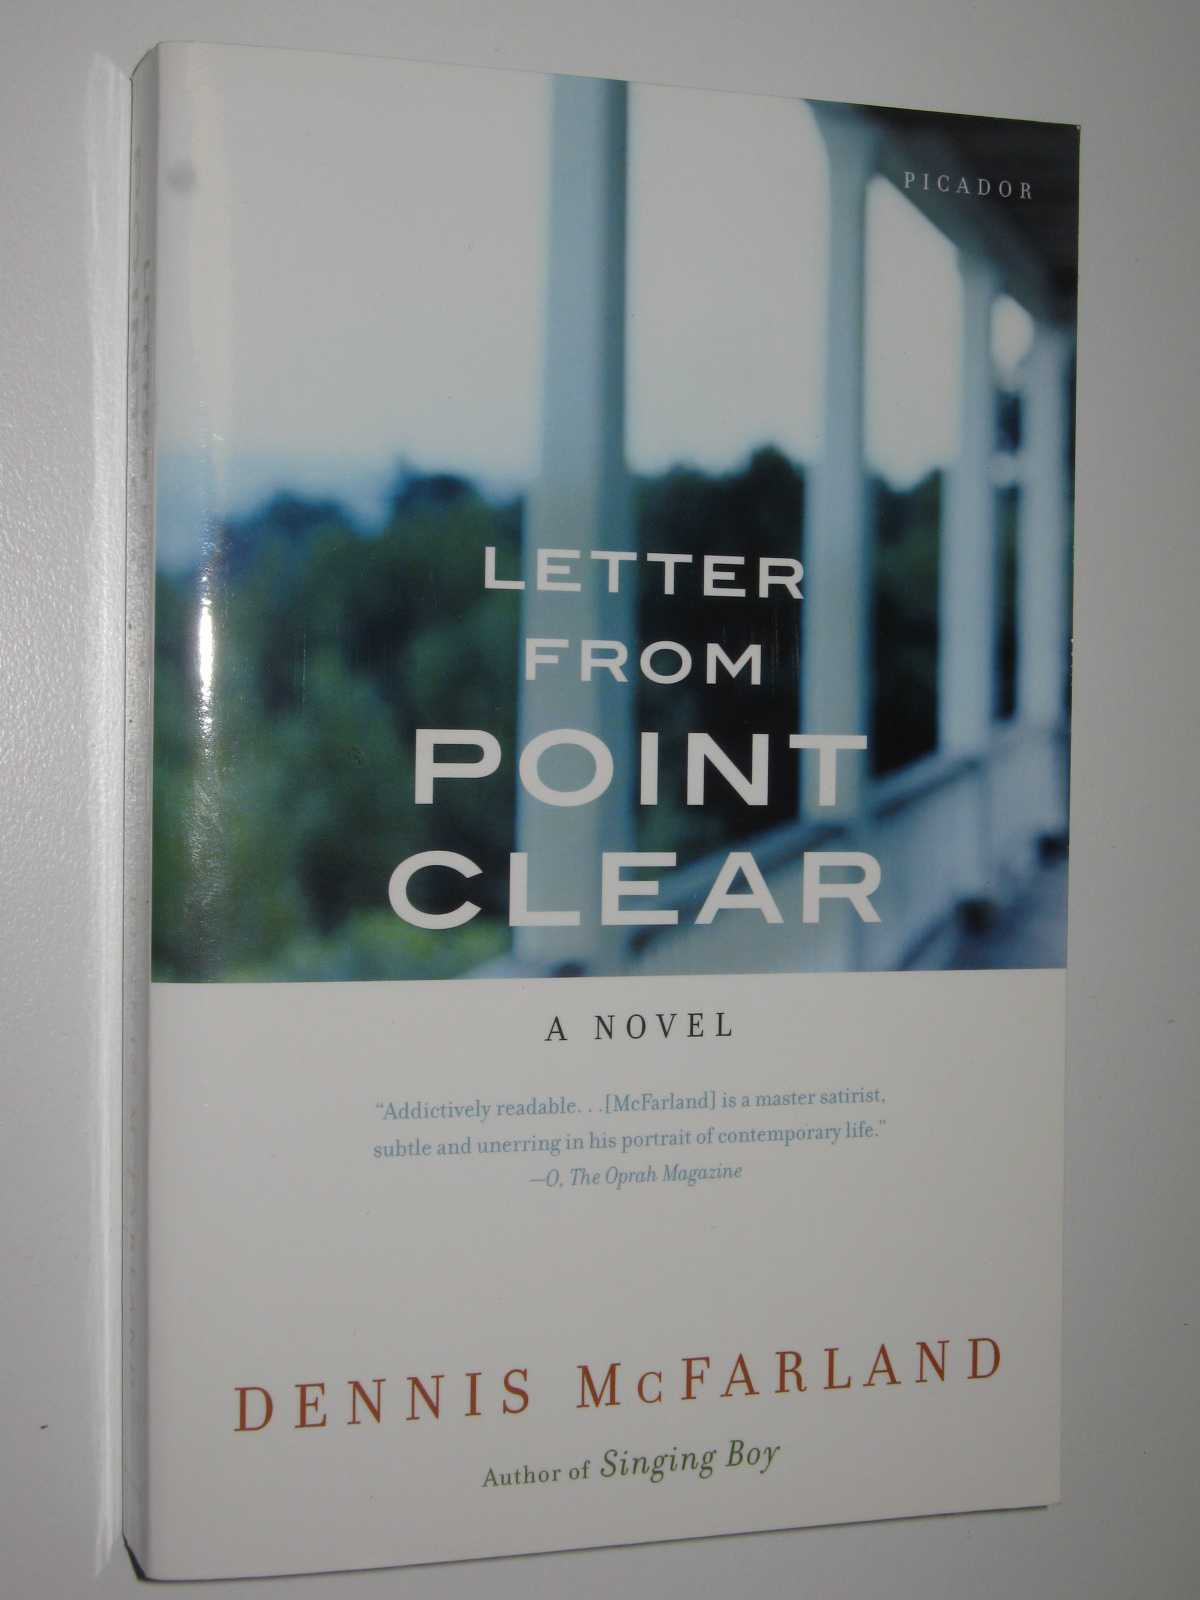 Letter from Point Clear by DENNIS MCFARLAND - 2008 Medium PB 0312427913 Picador